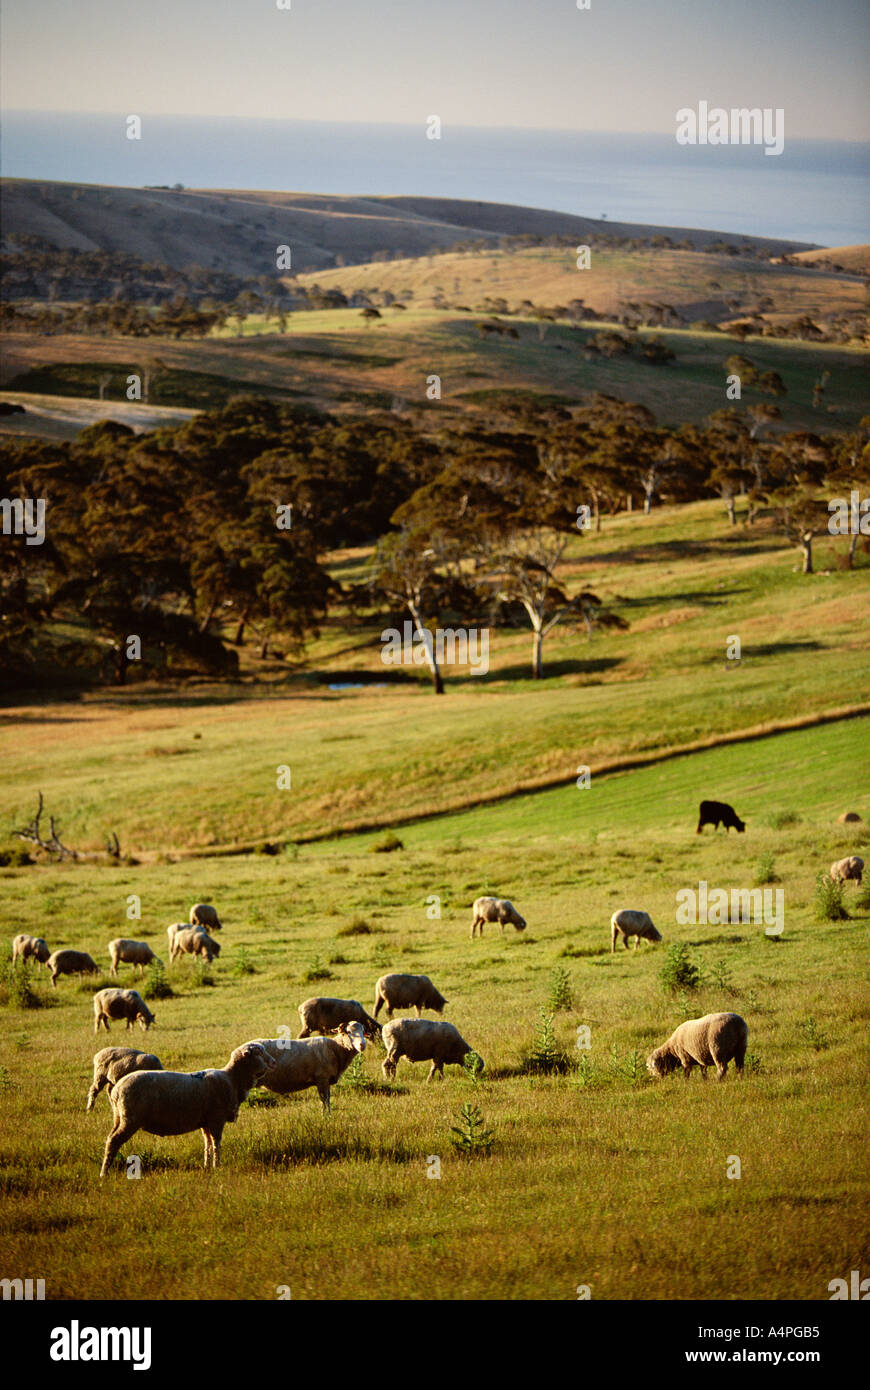 Sheep on pastureland near Cape Jervis Fleurieu Peninsula South Australia Australia Pacific - Stock Image